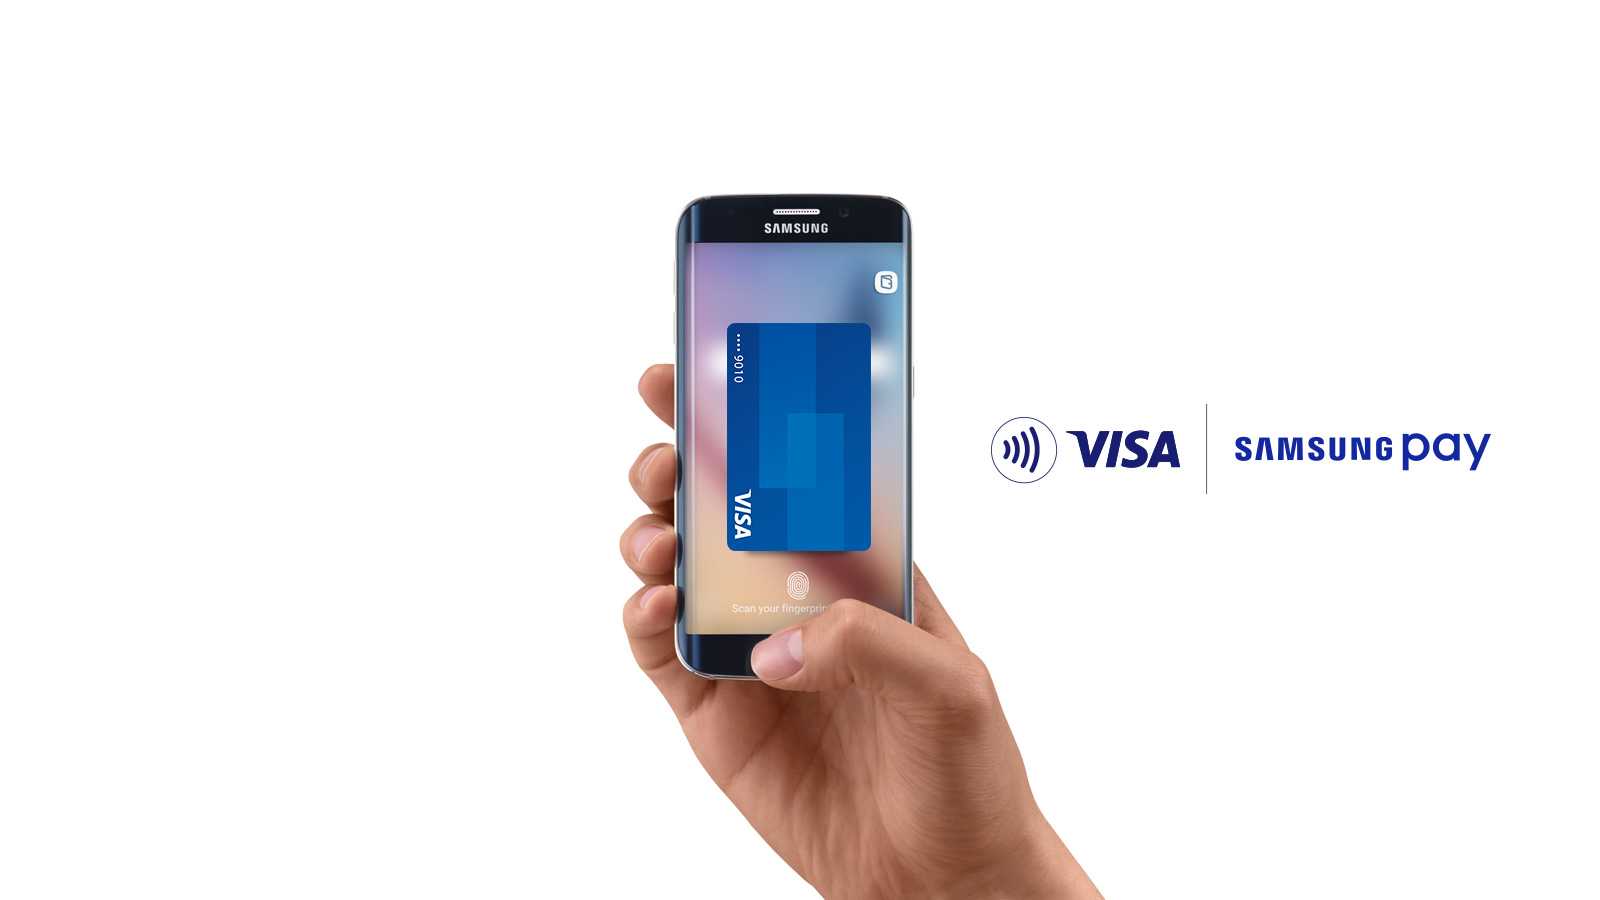 Contactless symbol Visa, Samsung Pay: hand holding Samsung smart phone with an image of a Visa card on the display.